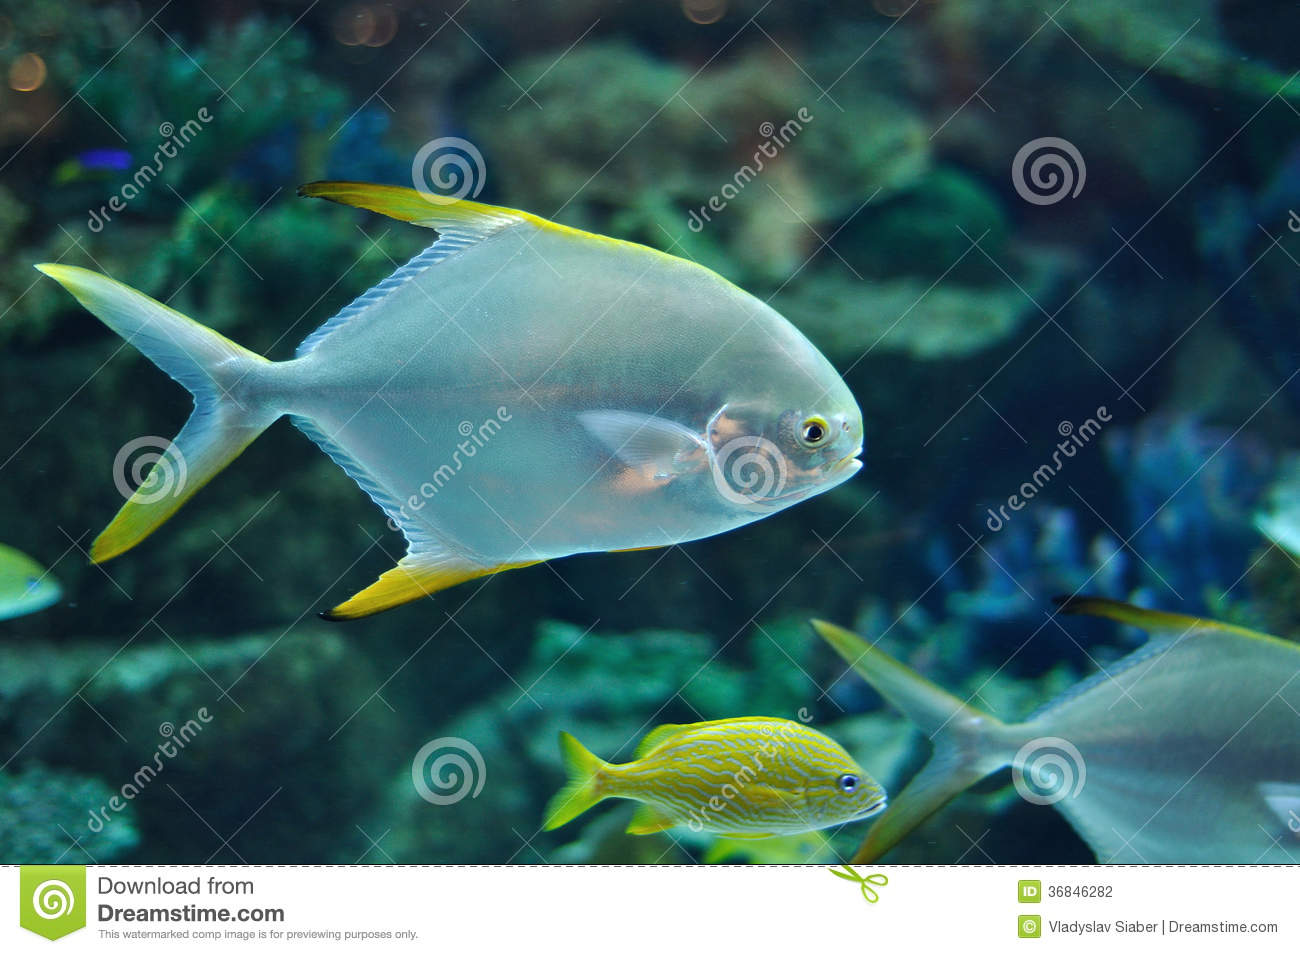 Fish similar to platax or pomfret in salwater aqua stock for Yellow fish tank water